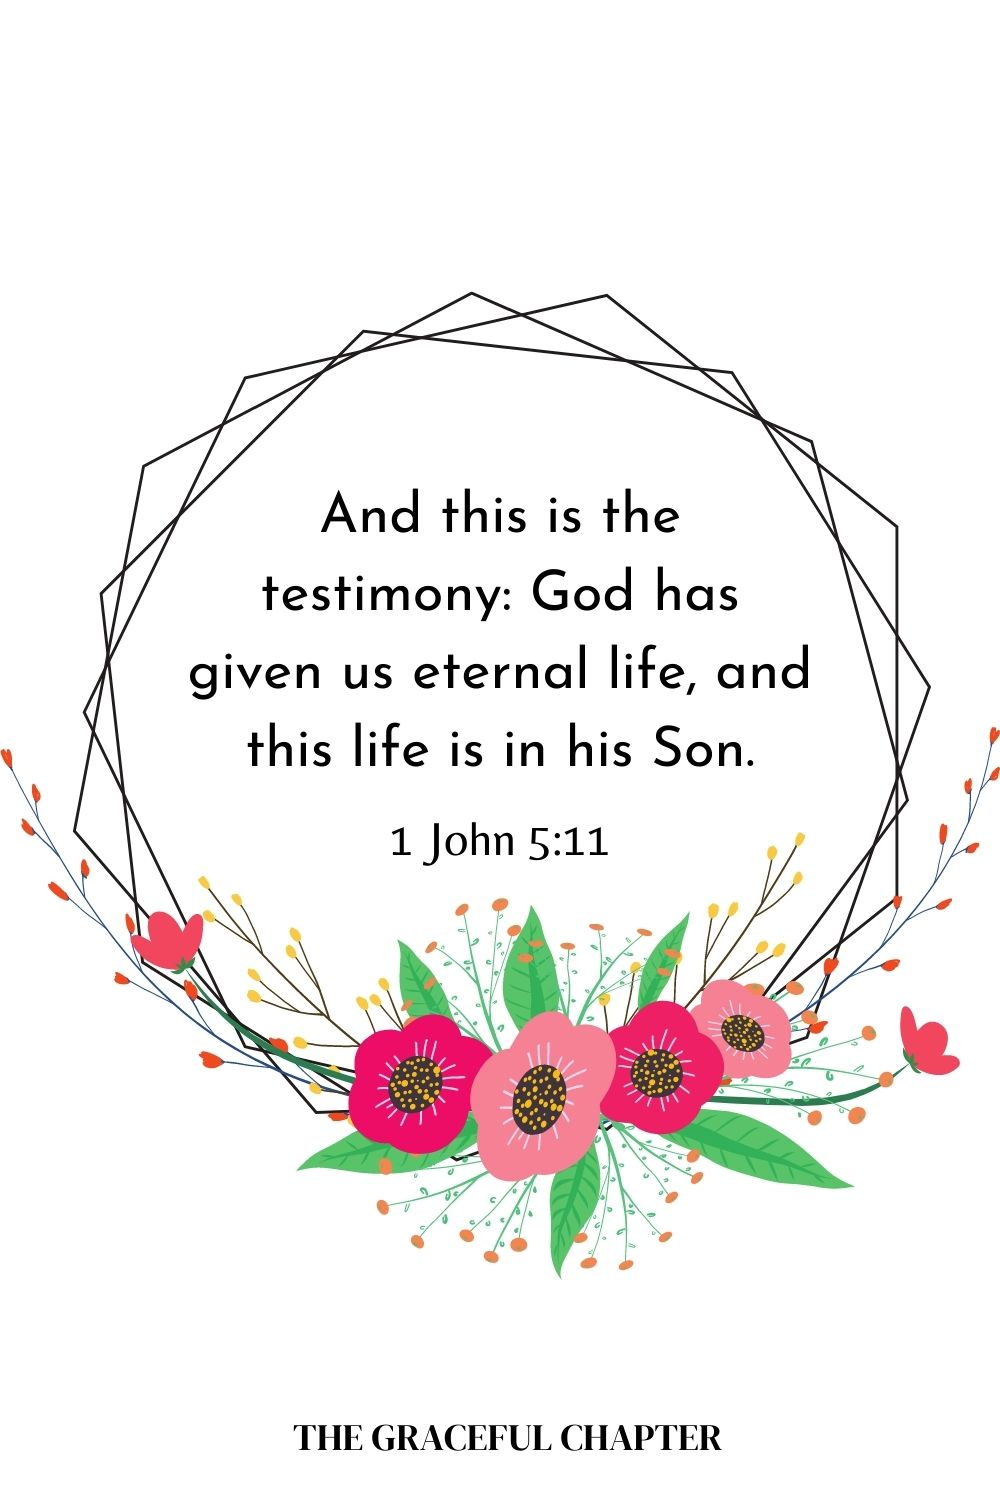 And this is the testimony: God has given us eternal life, and this life is in his Son.1 John 5:11